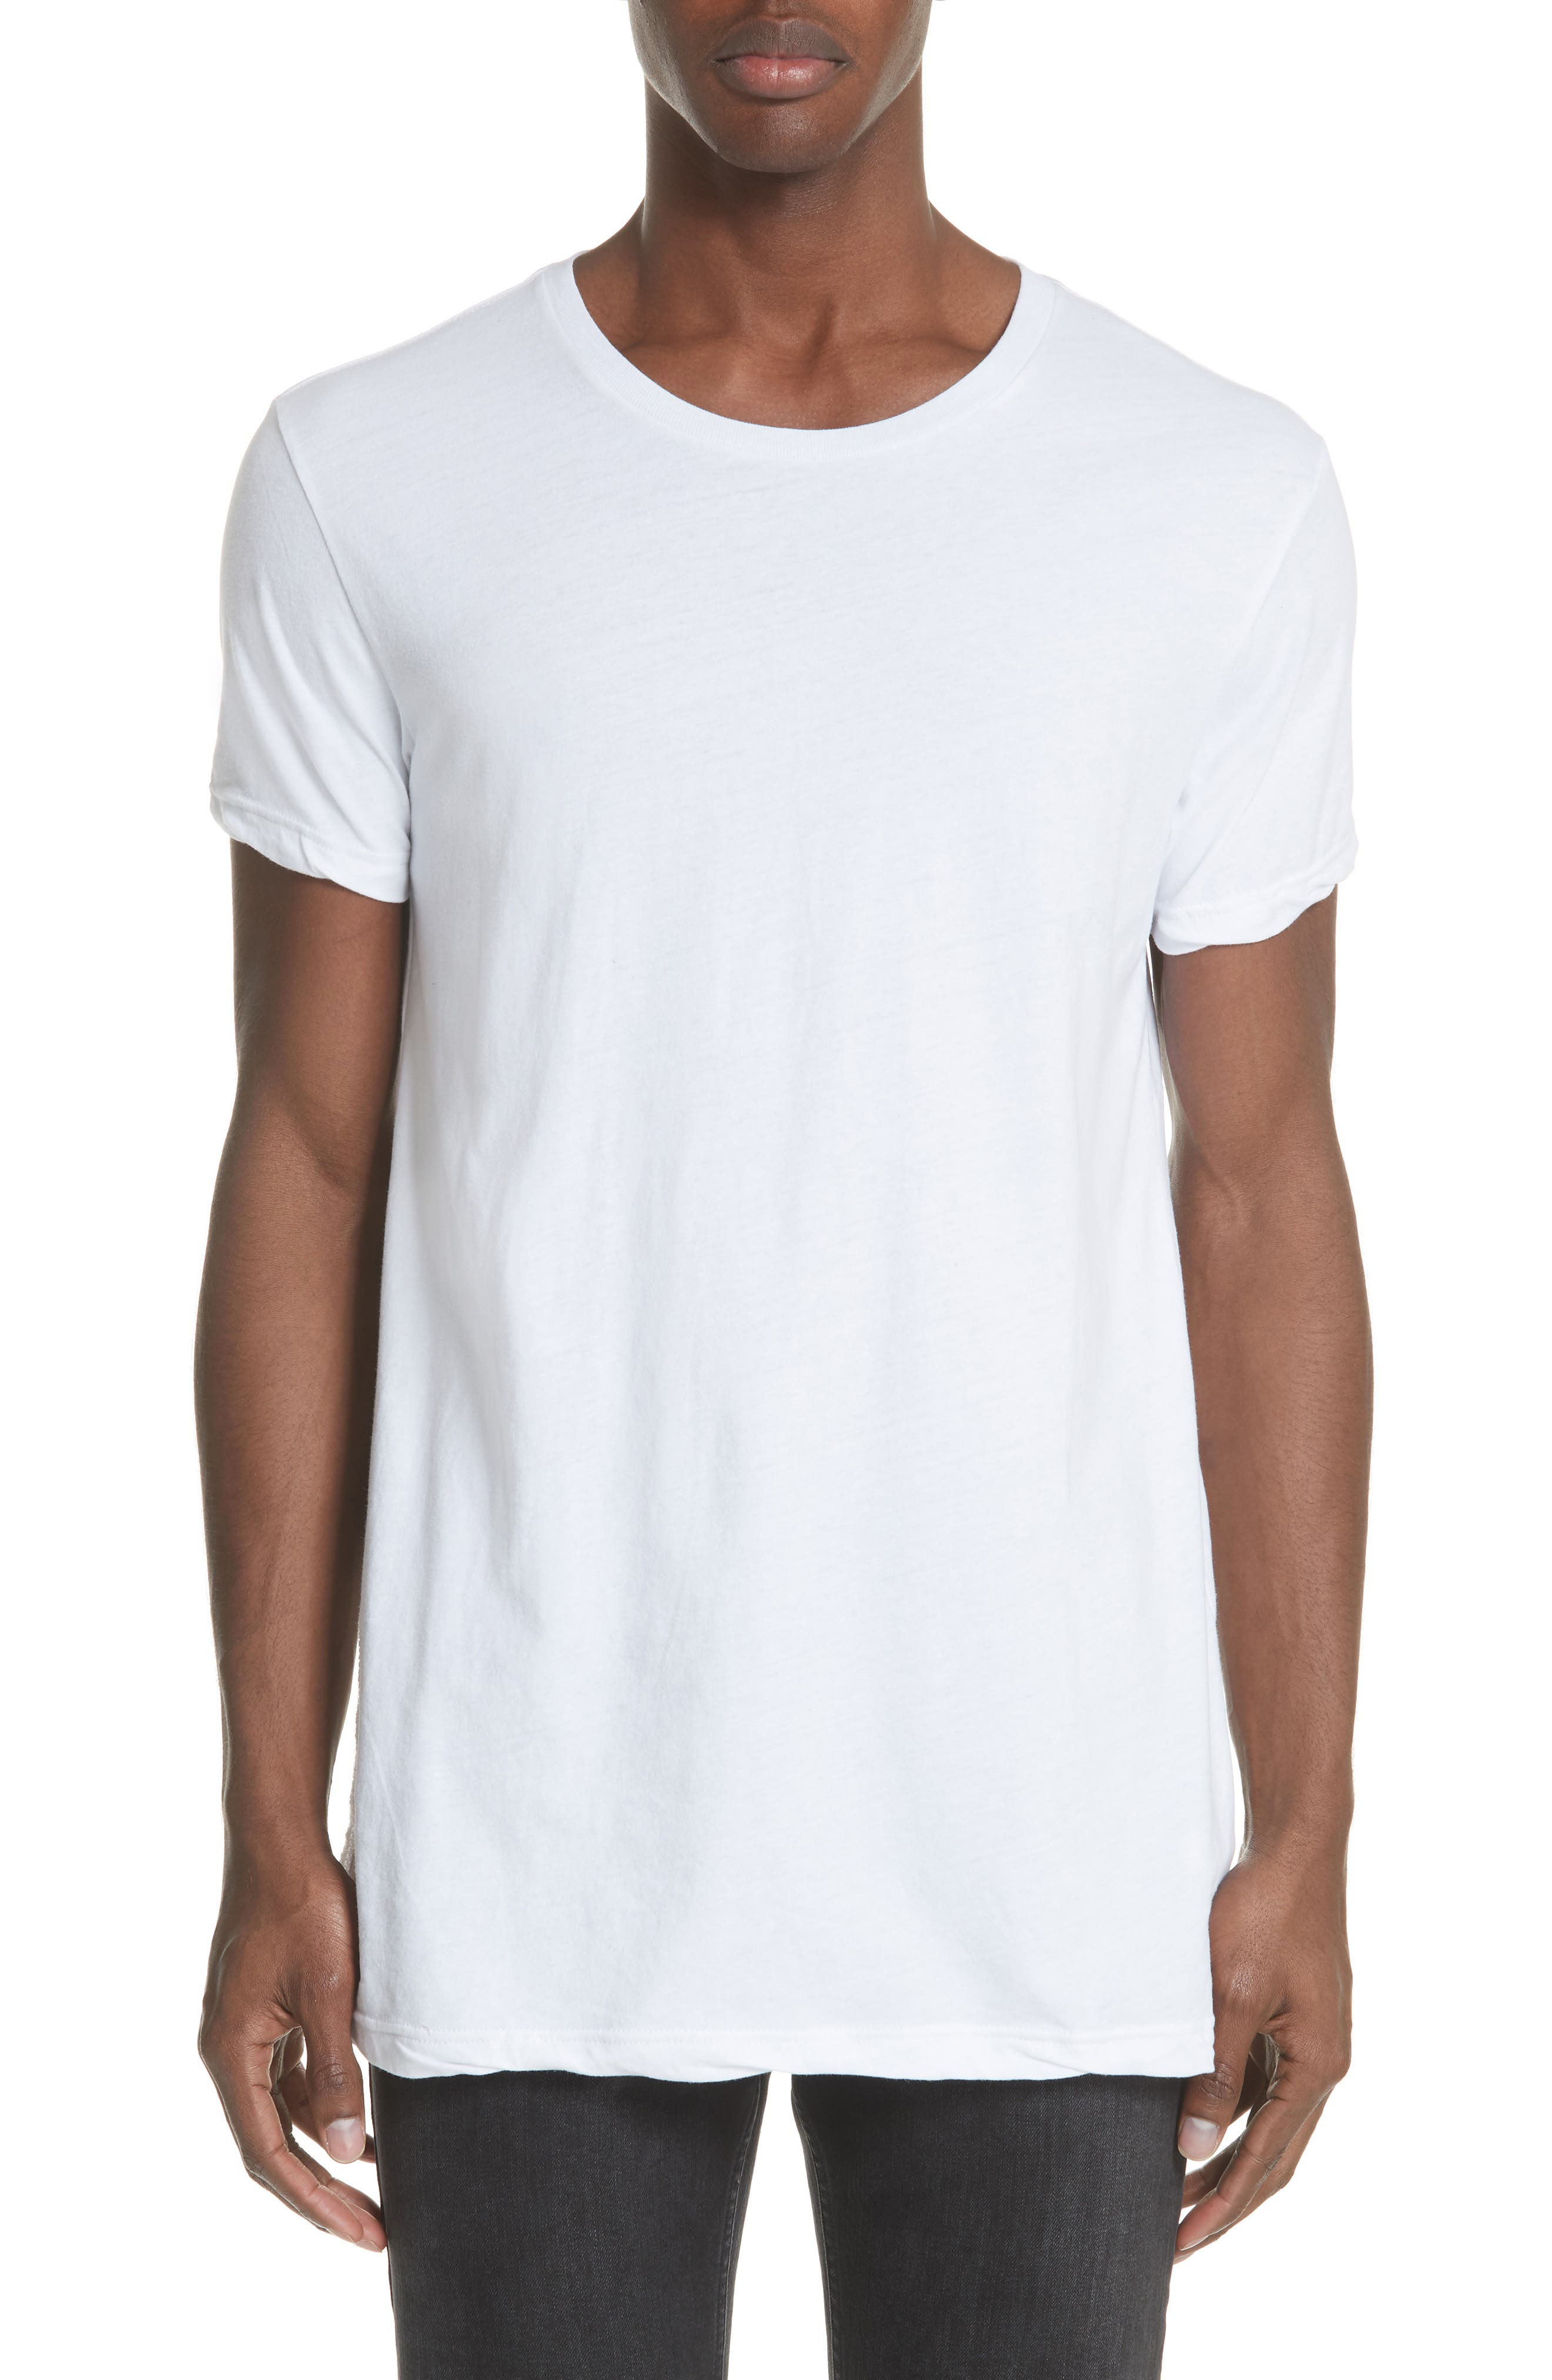 Seeing Lines T-Shirt,                             Main thumbnail 1, color,                             WHITE